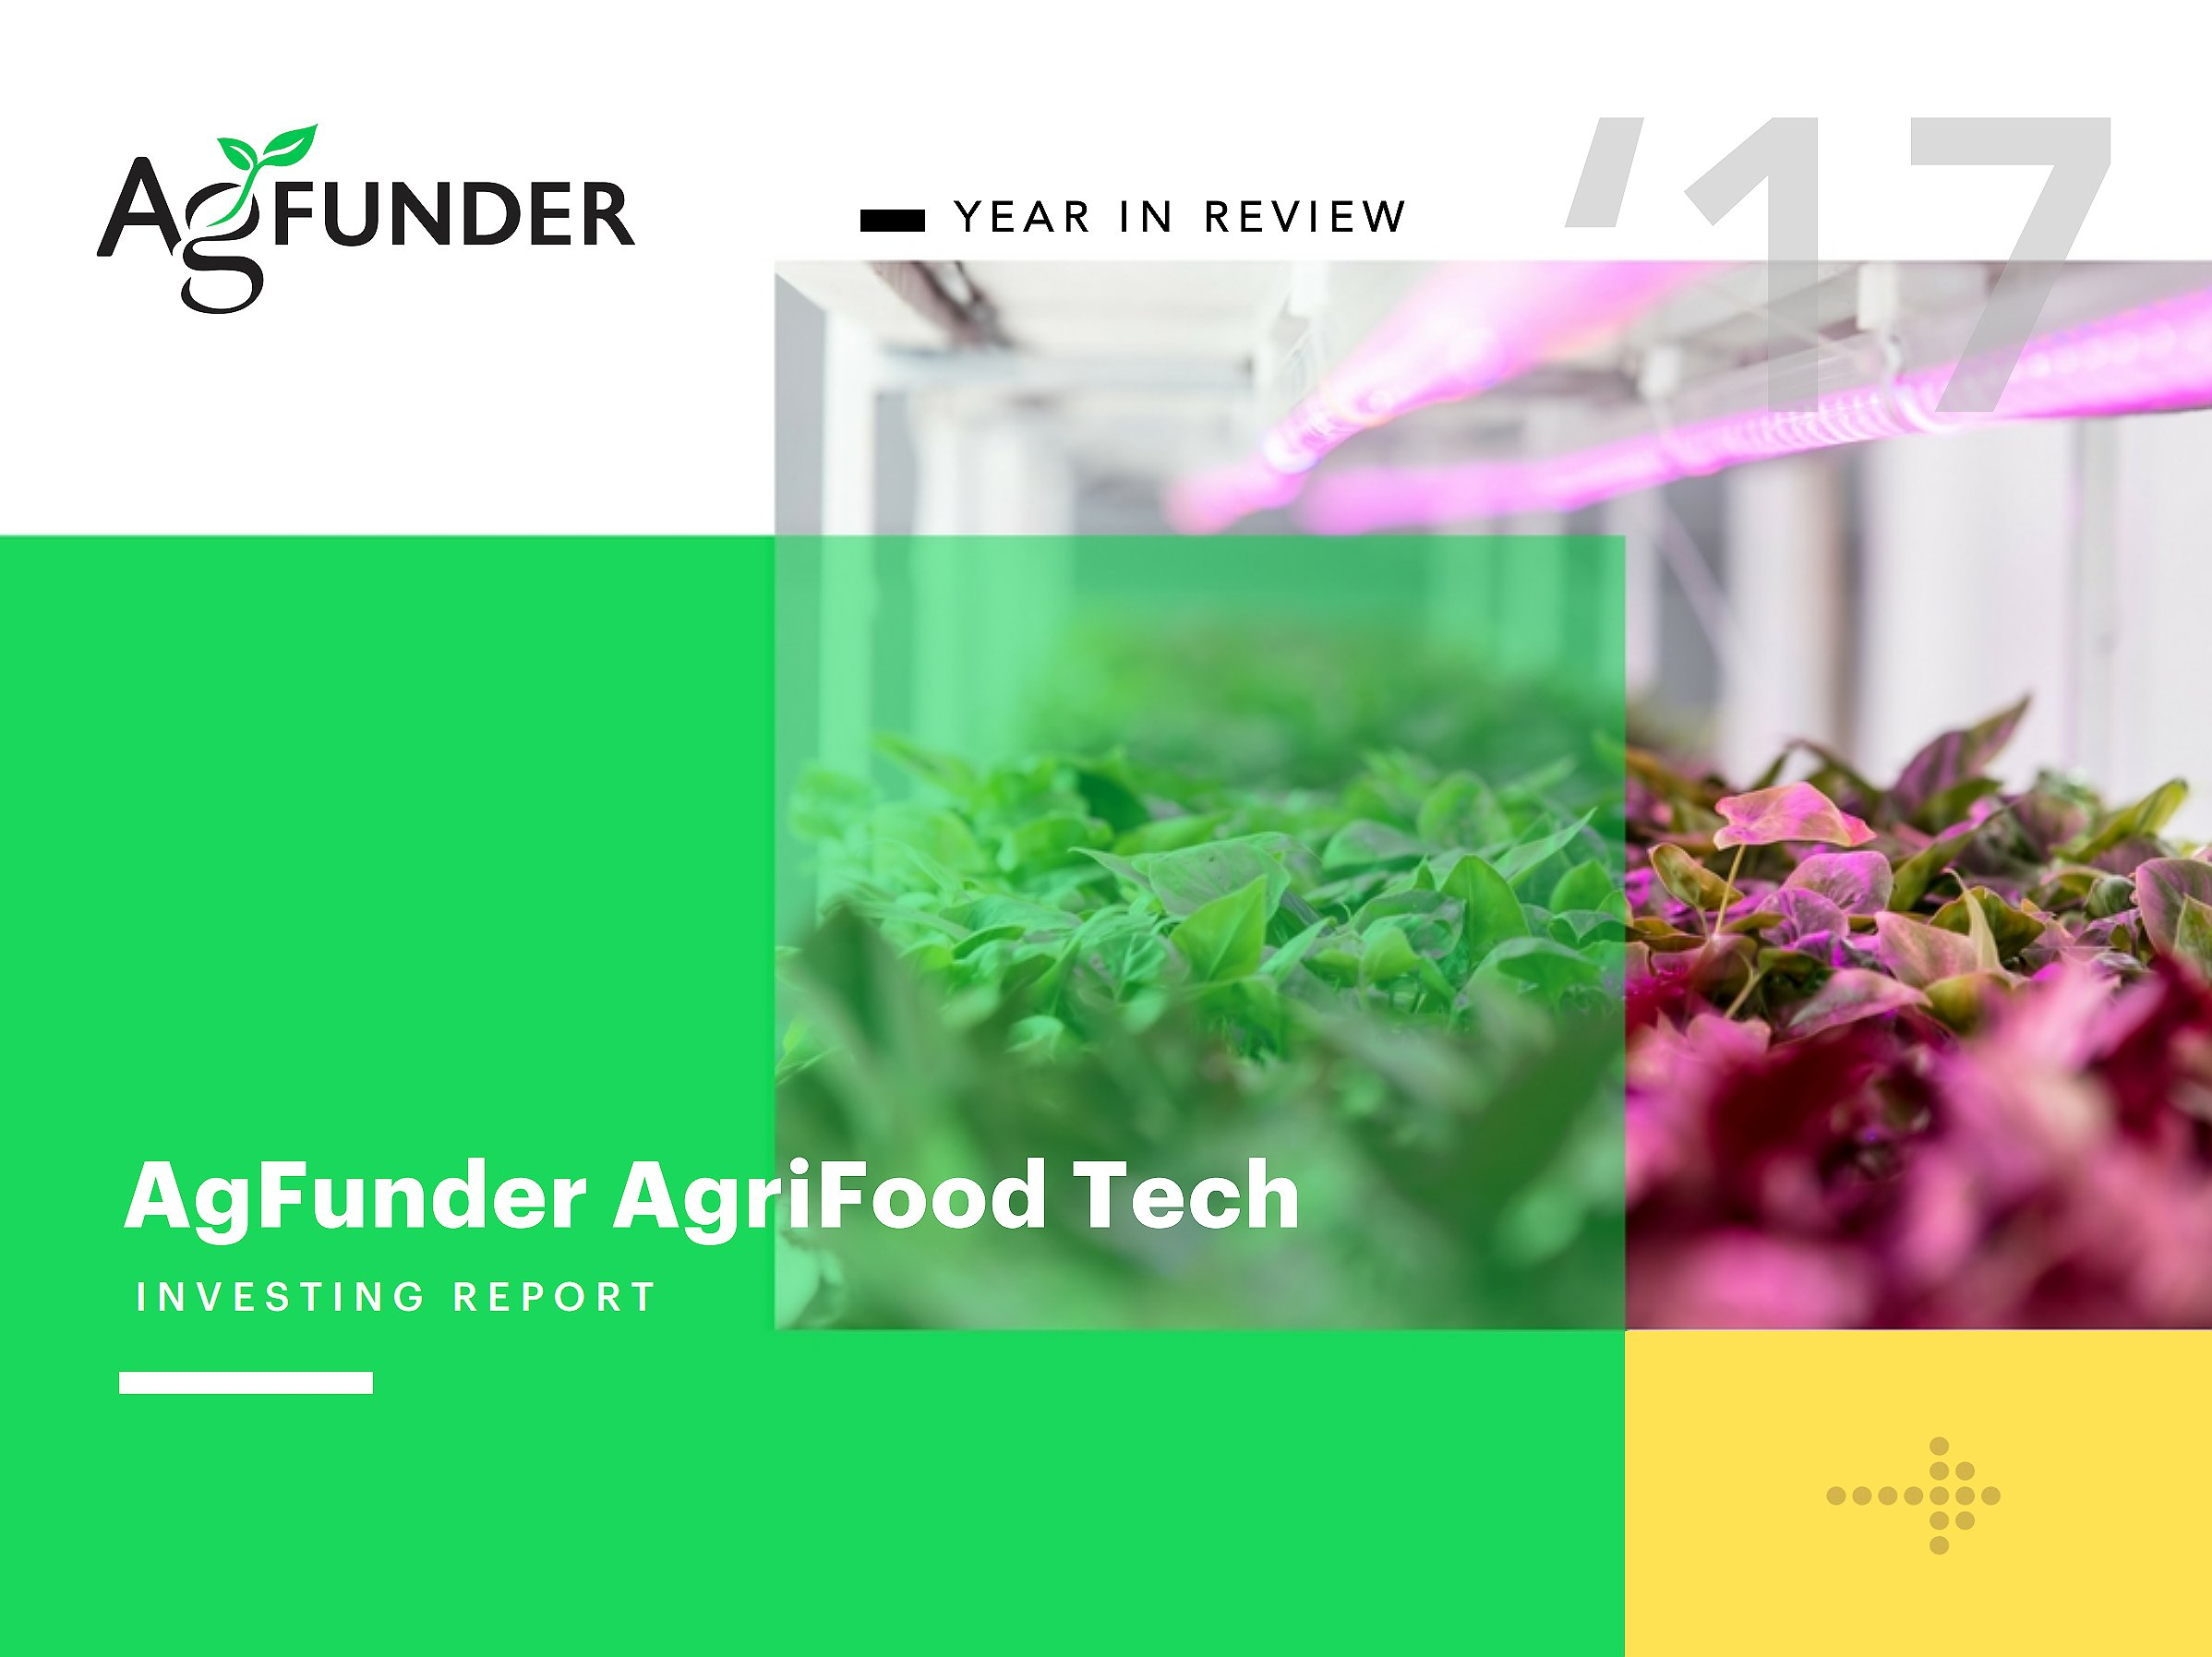 AgFunder AgriFood Tech Investing Report - 2017